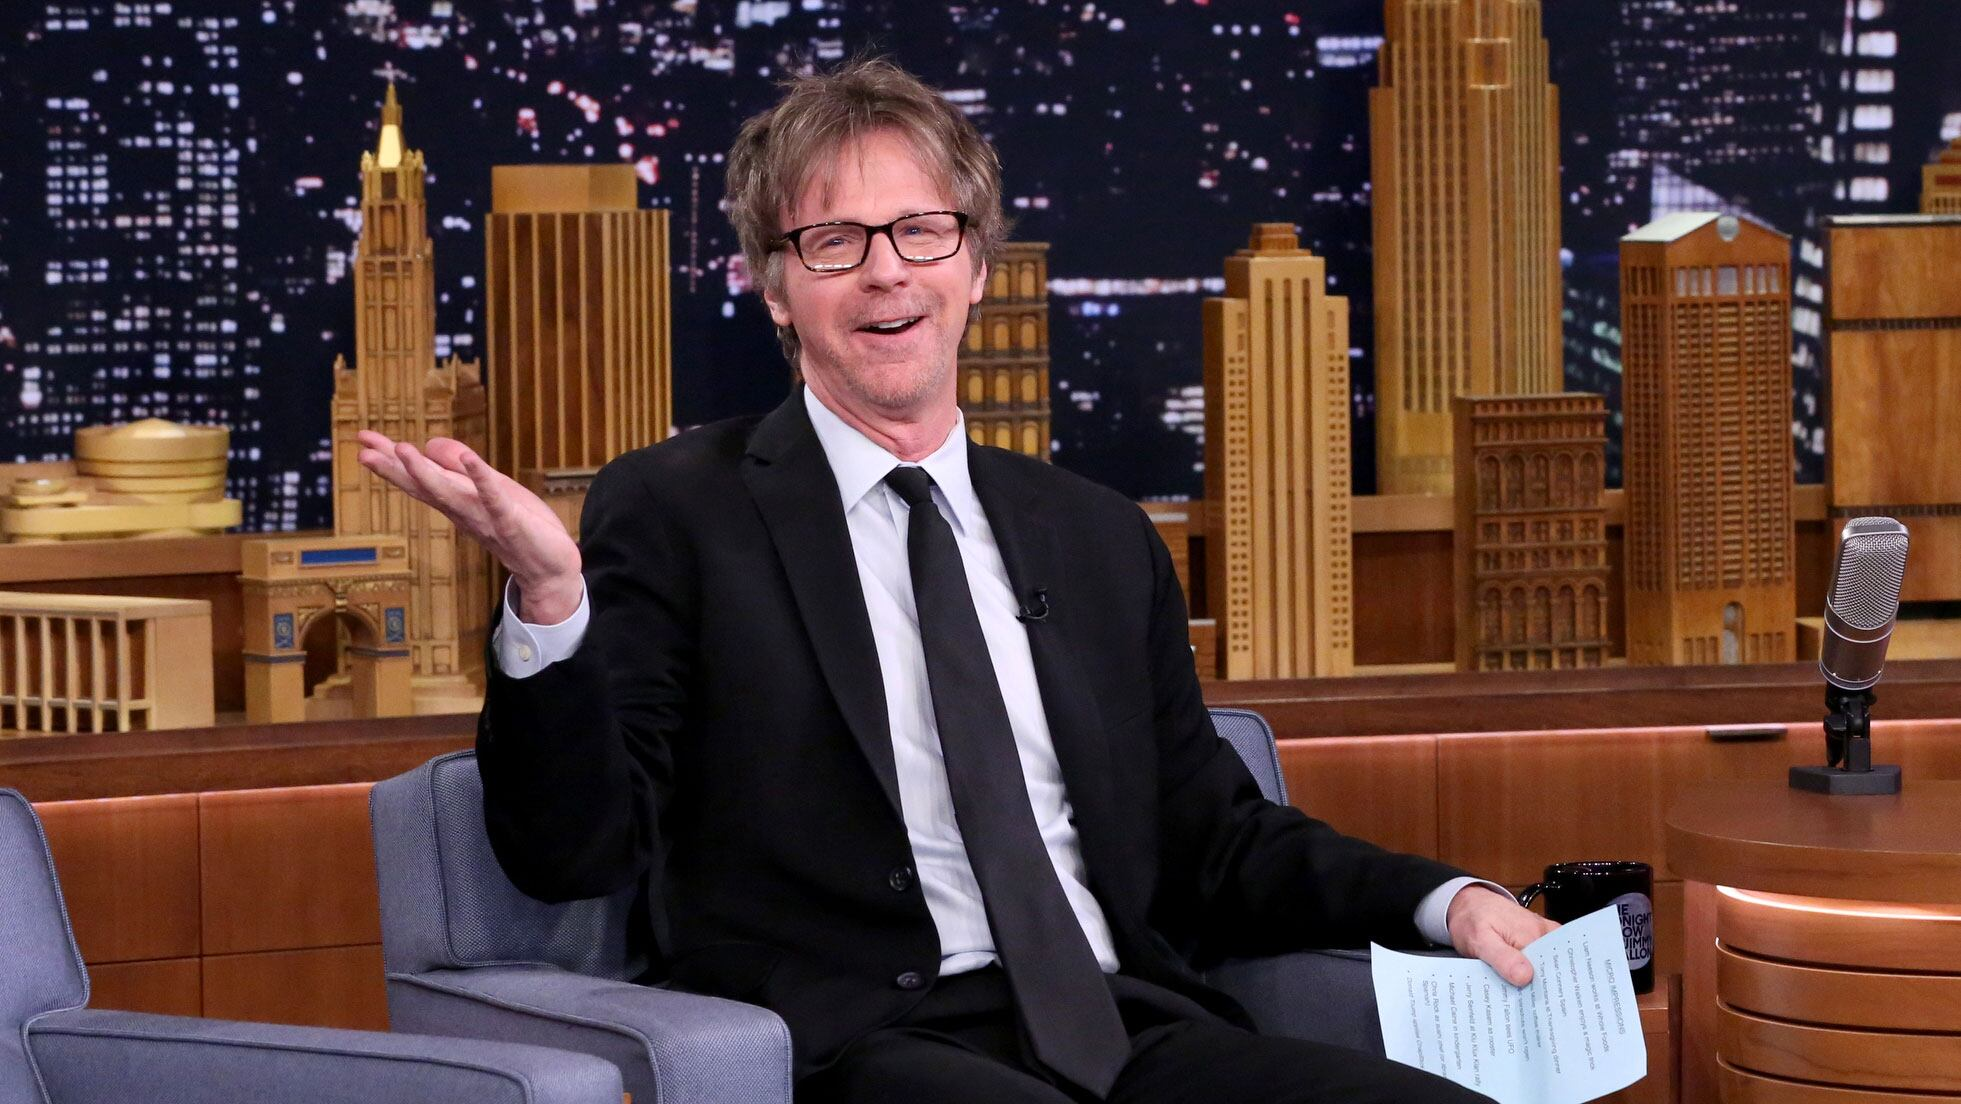 Dana Carvey Debuts His Jimmy Fallon Micro-Impression